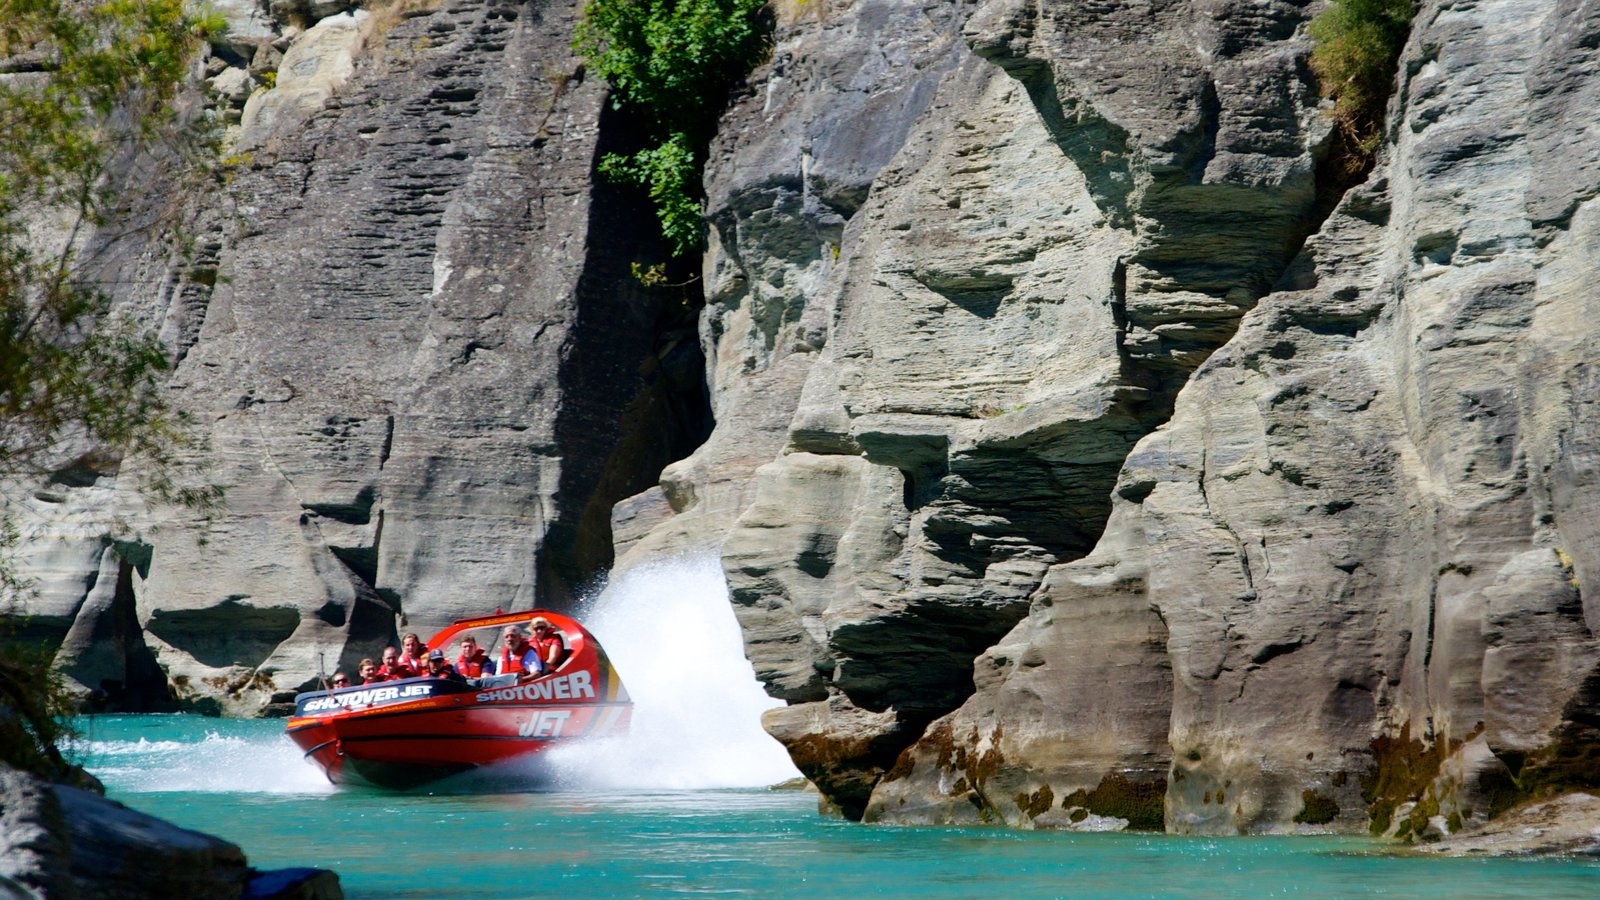 Queenstown featuring a river or creek, a gorge or canyon and boating